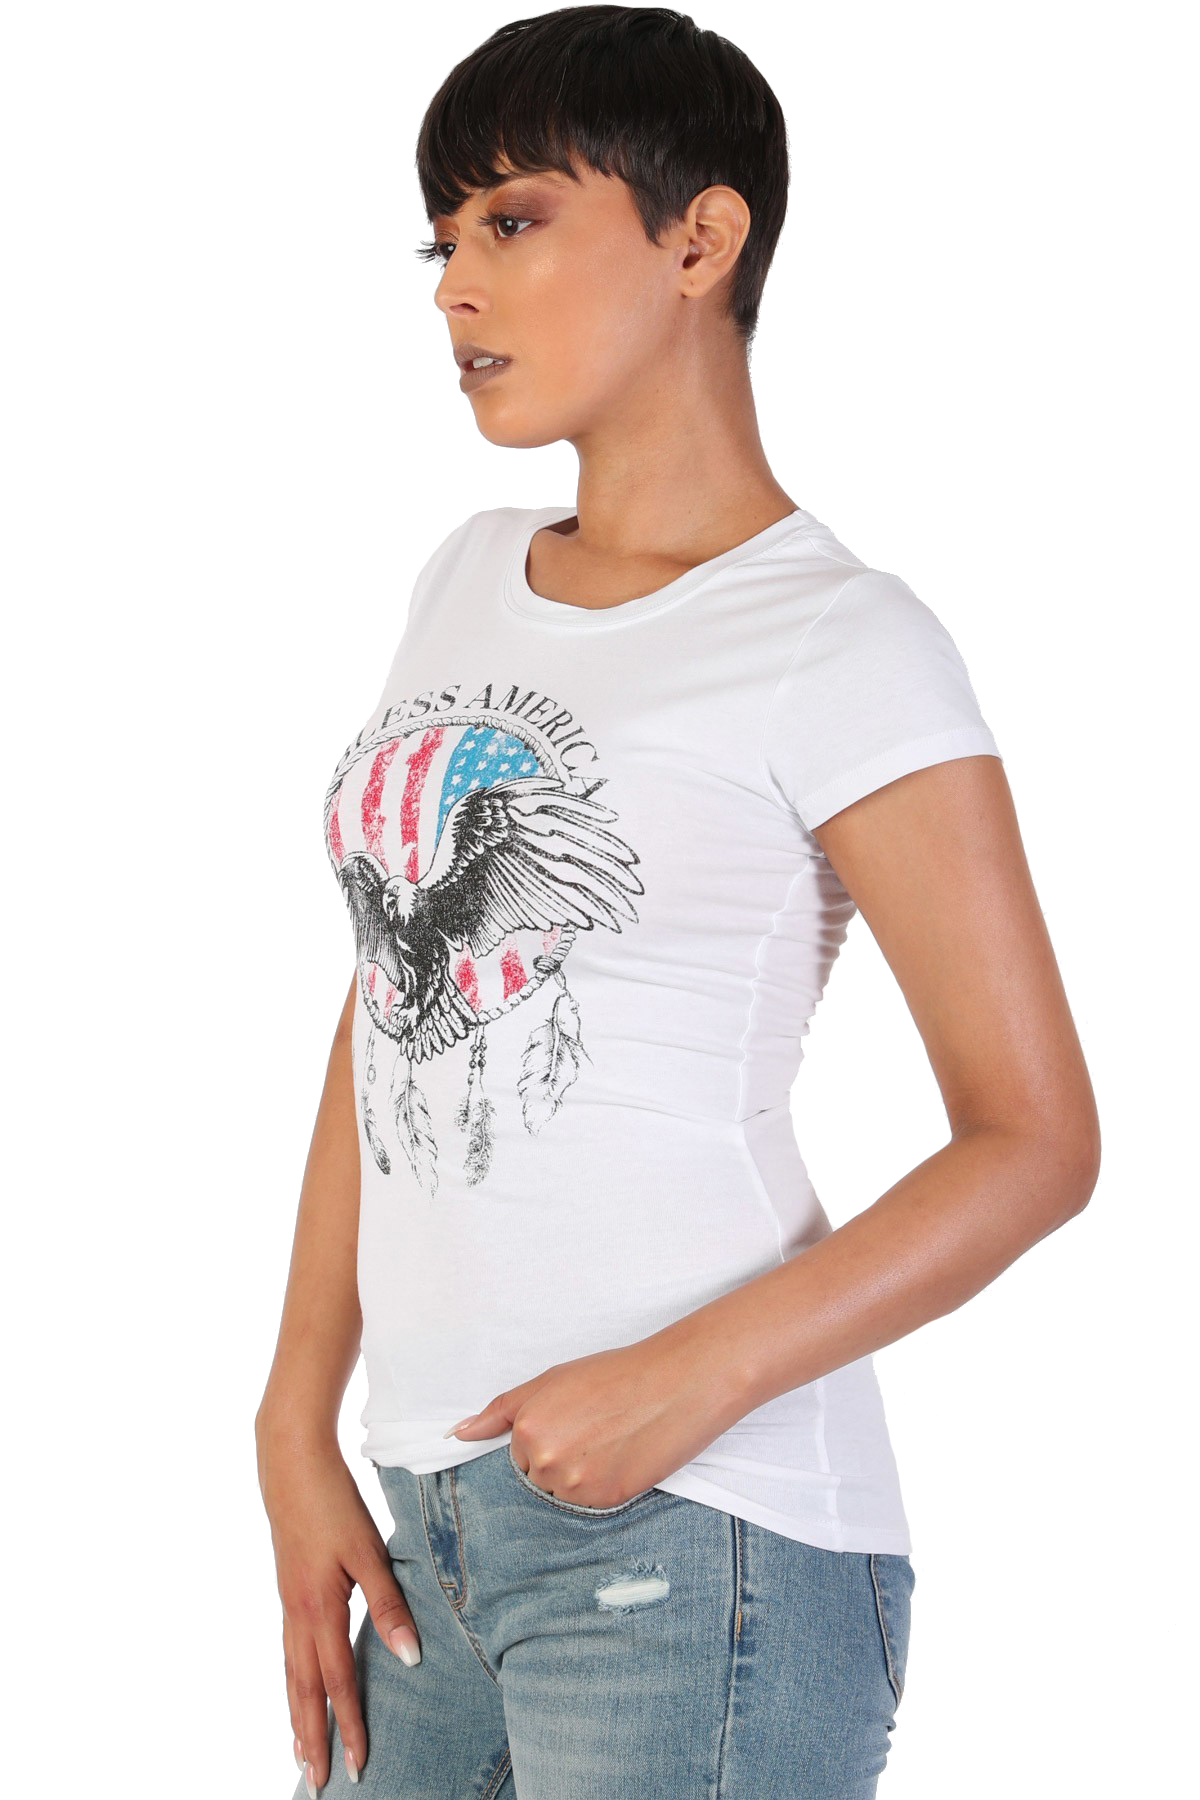 Women-039-s-Juniors-Patriotic-Casual-Graphic-Print-Short-Sleeve-T-Shirt-Top thumbnail 11